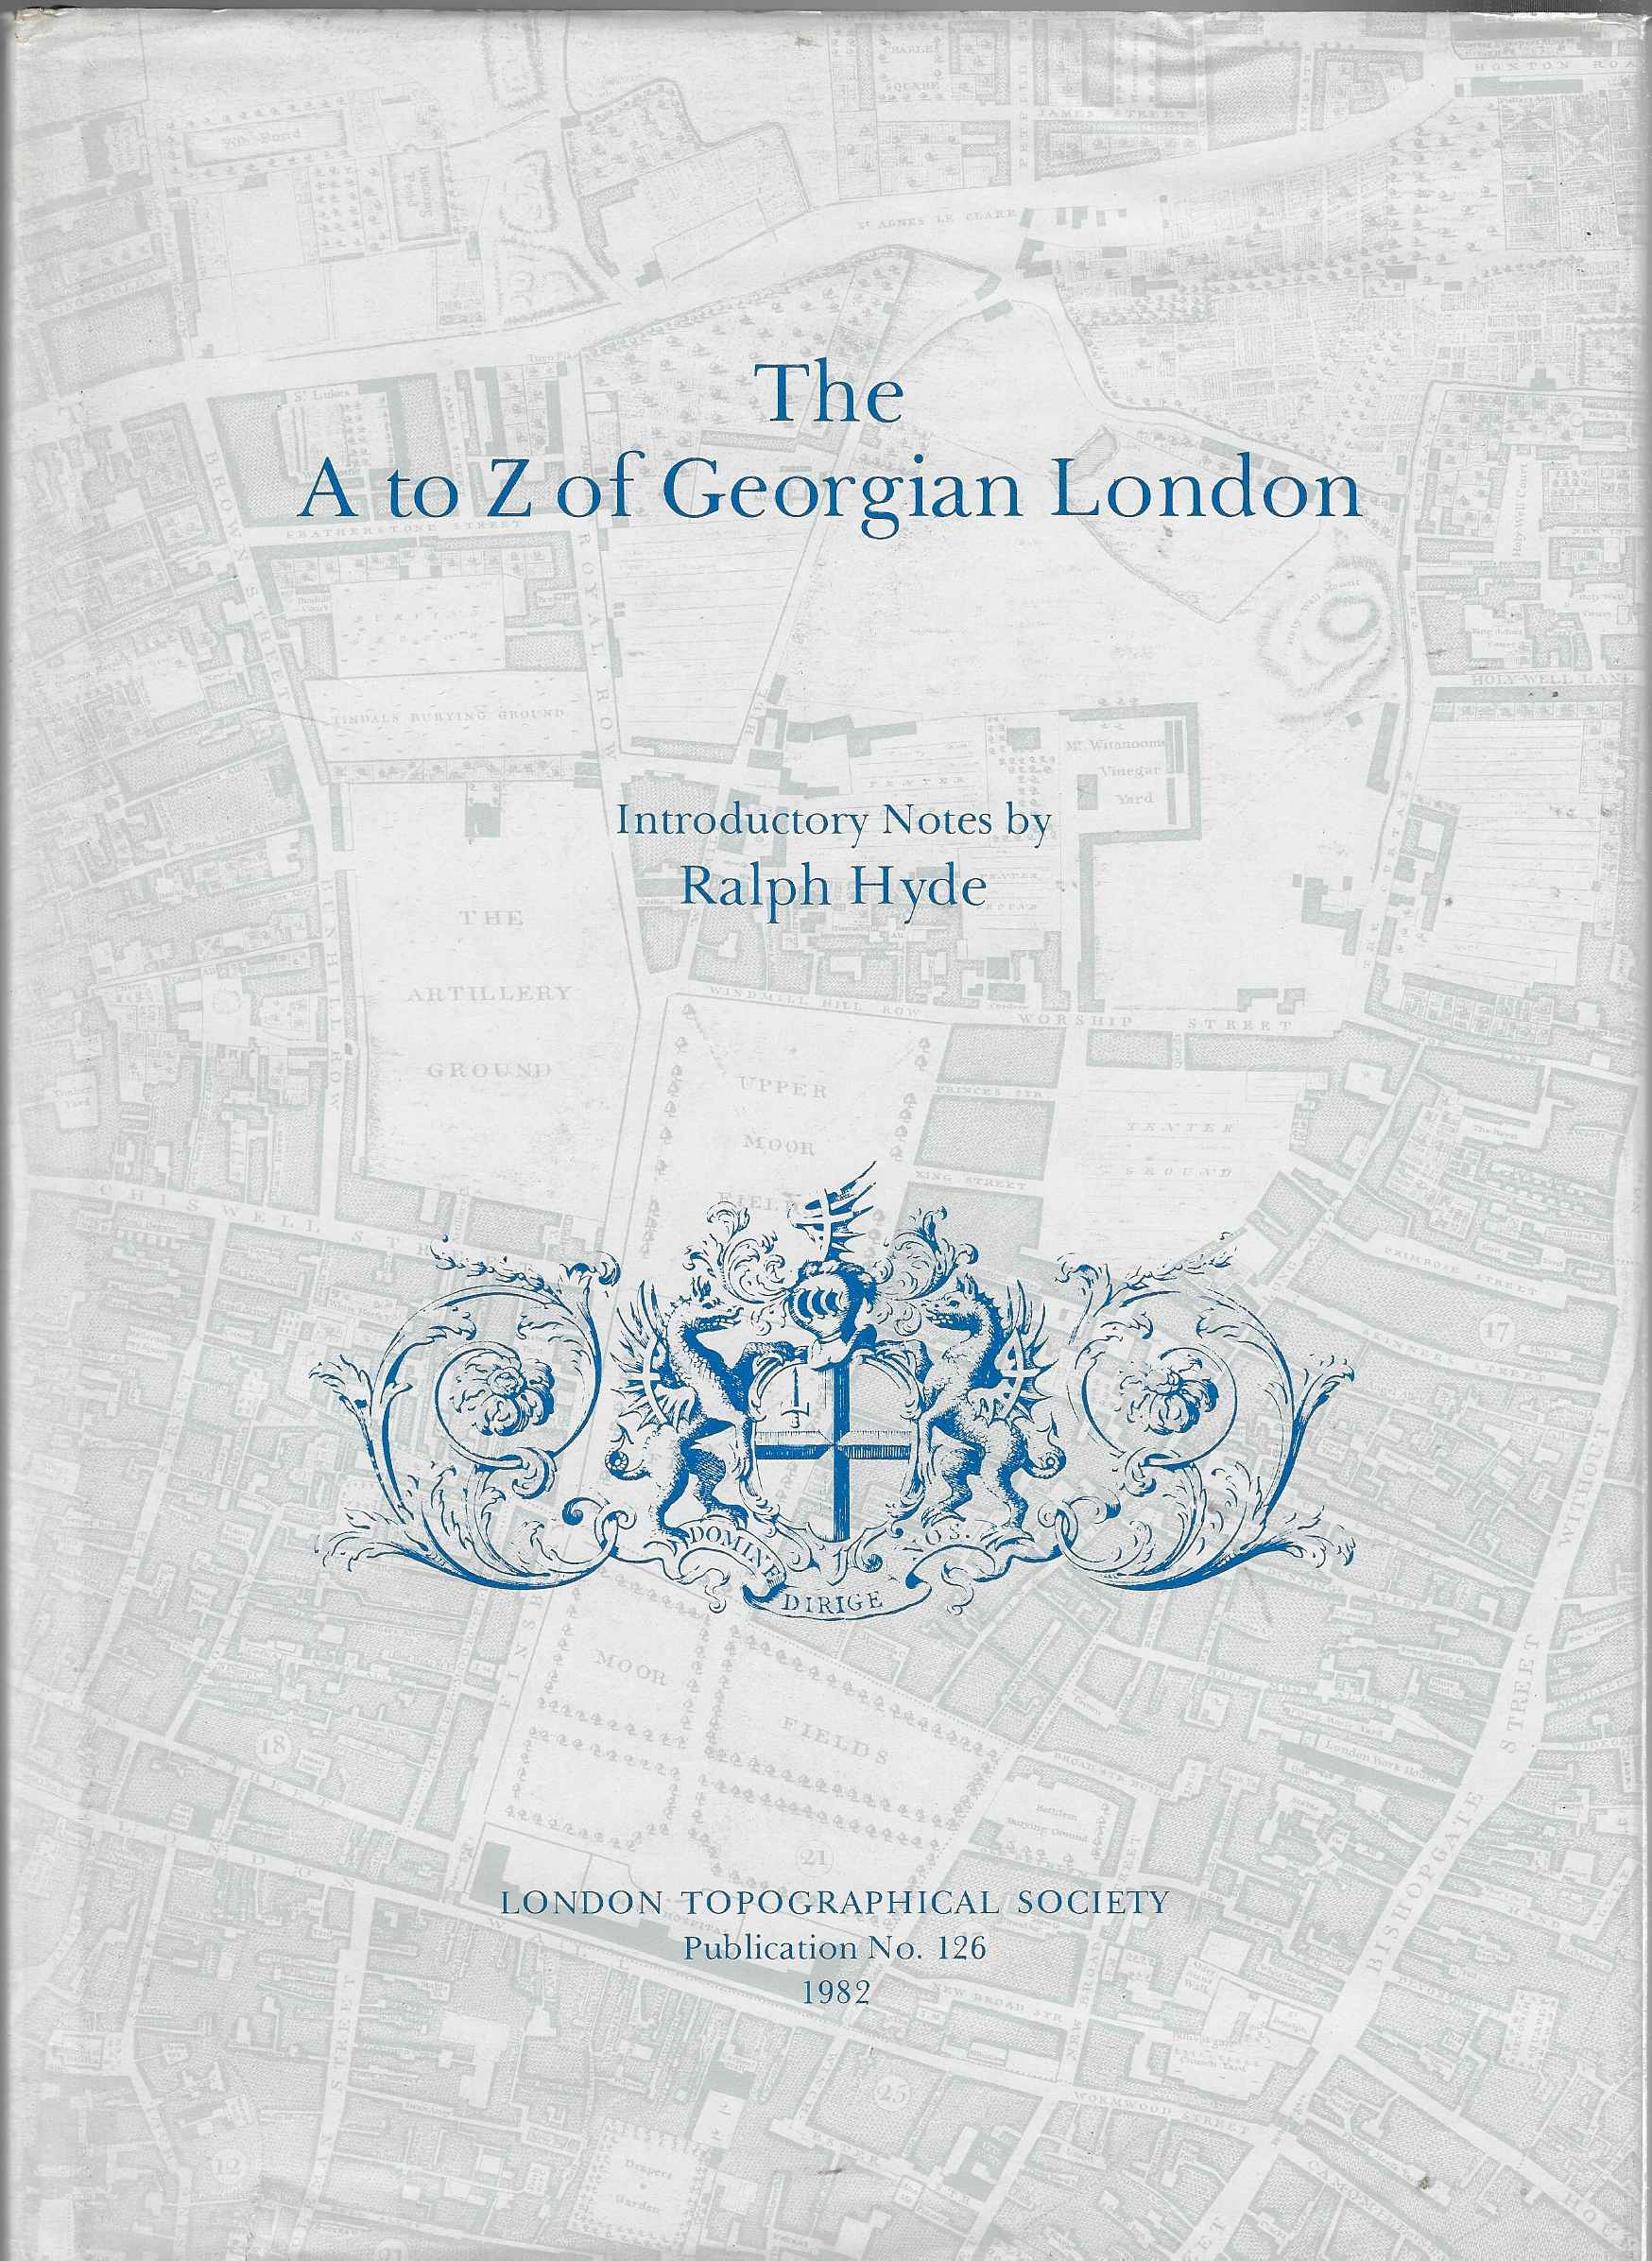 Jacket of The A to Z of Georgian London